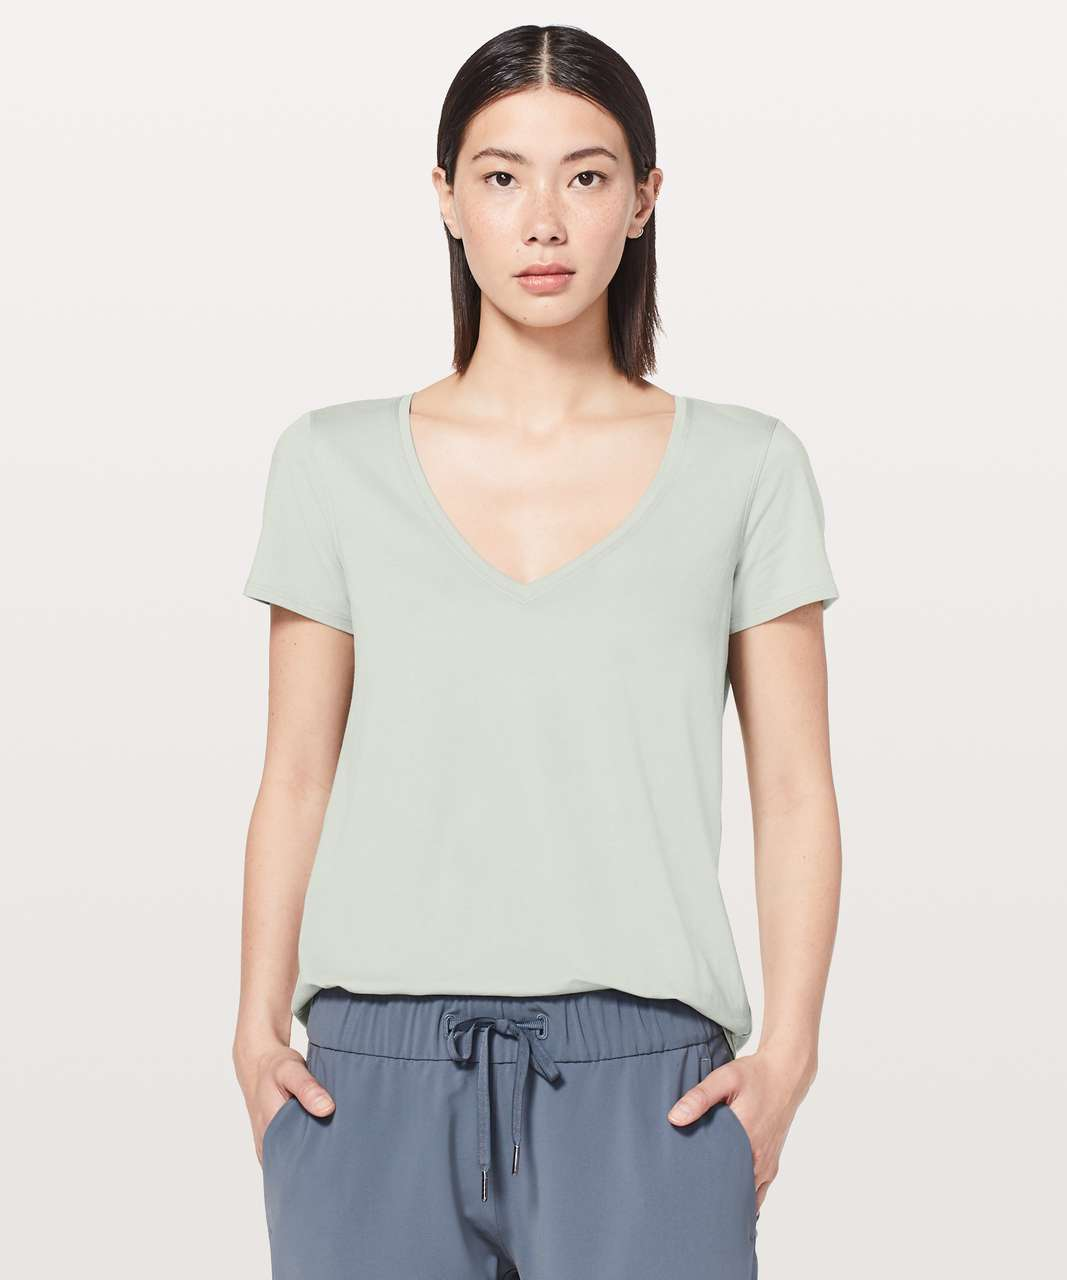 Lululemon Love Tee V - Jade Grey